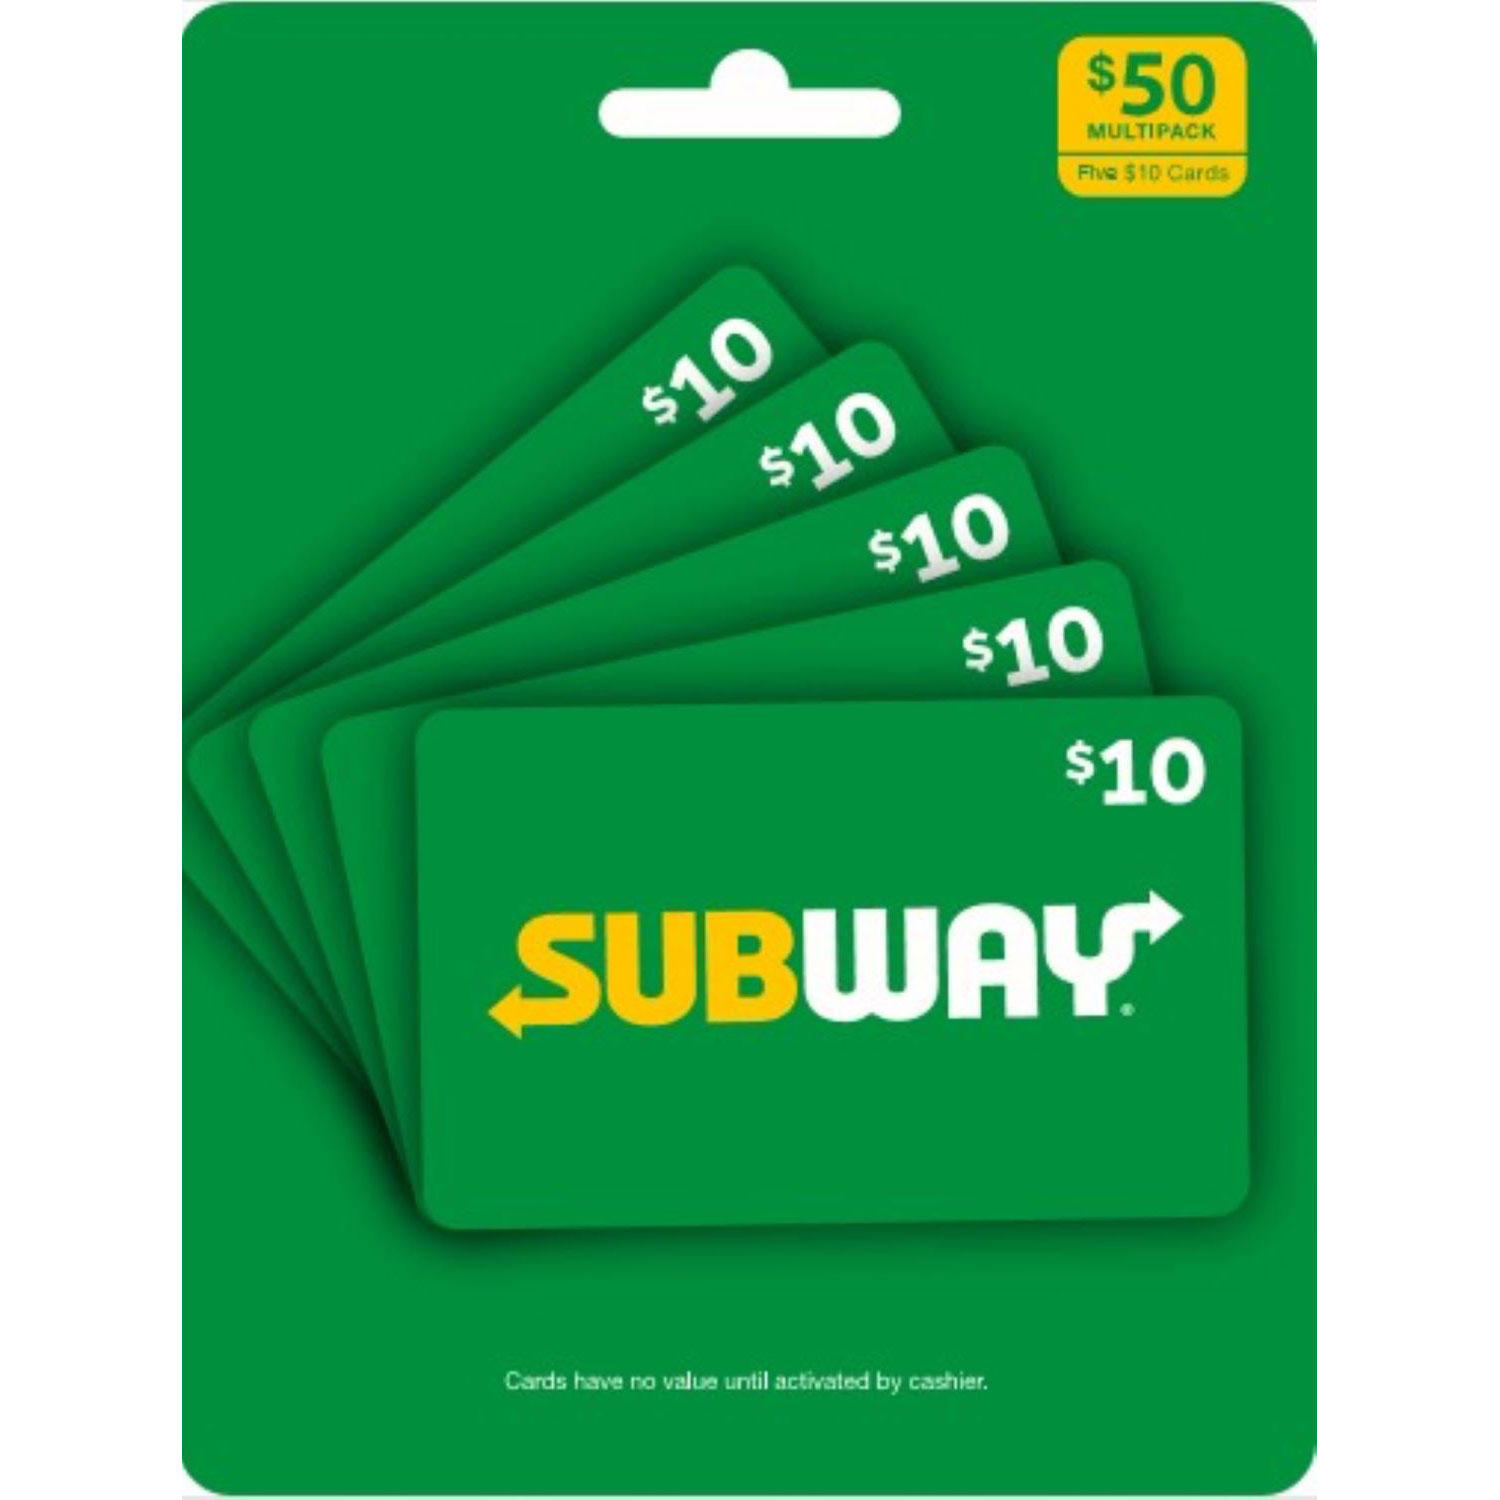 $50 (5 x $10) Subway Value Gift Cards